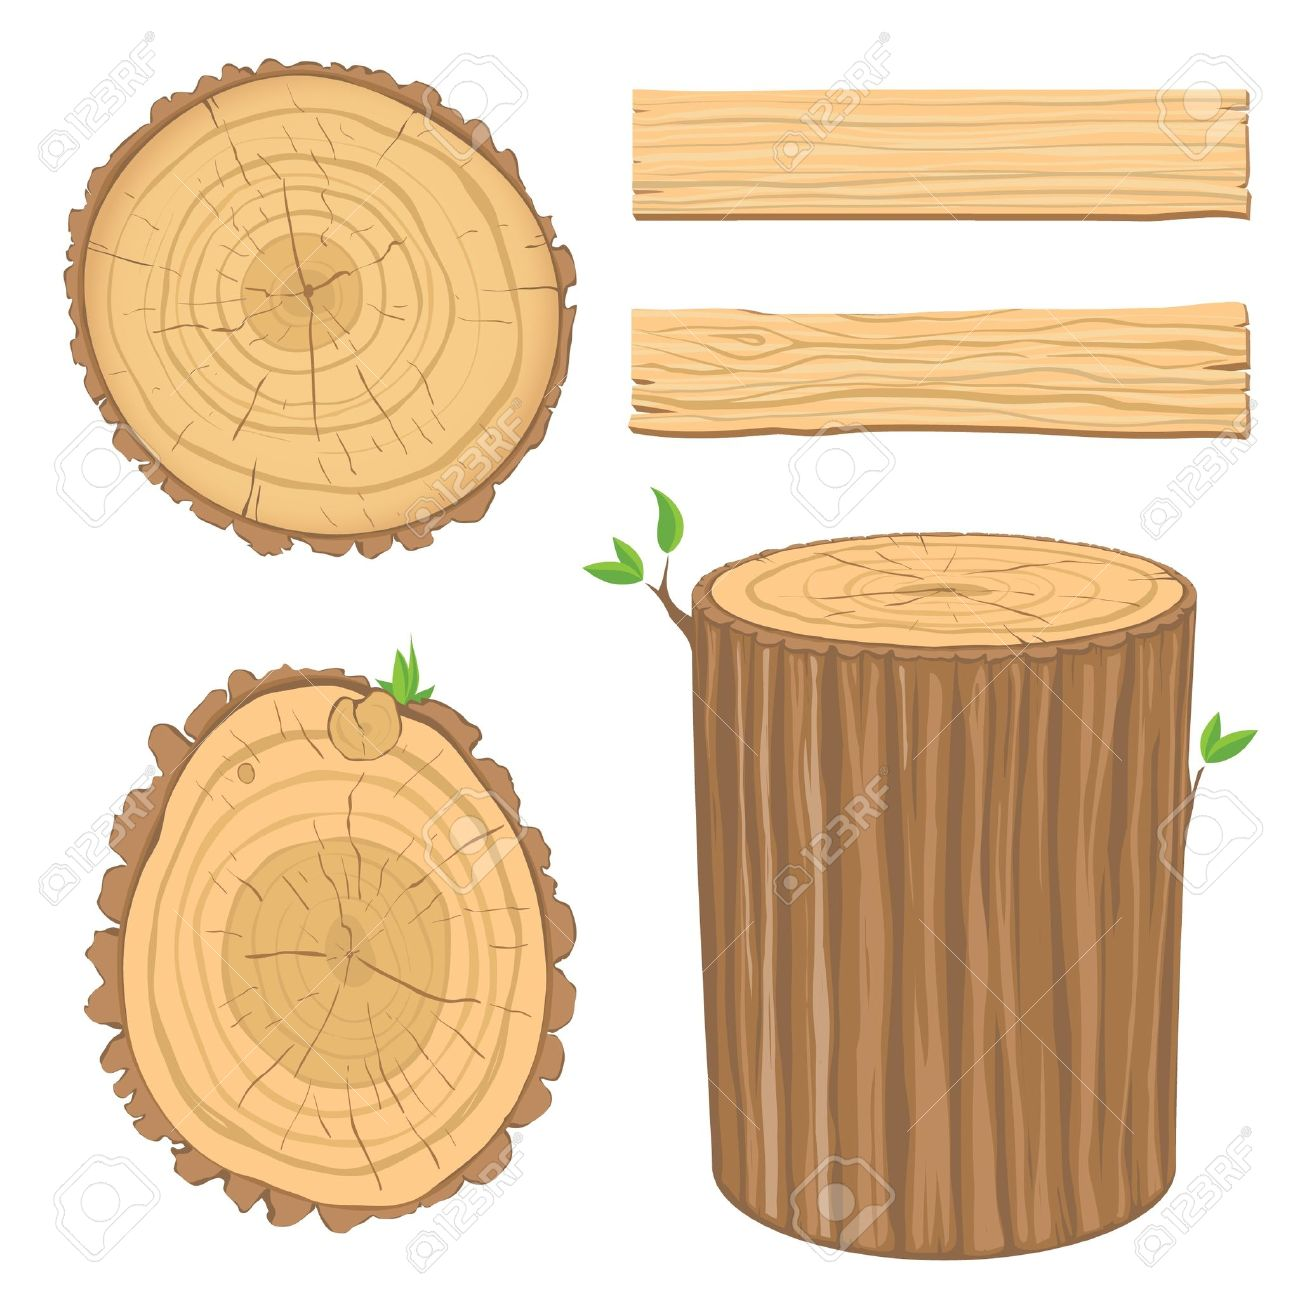 set of wooden materials - cross section of tree trunk, isolated on white background - 9843393